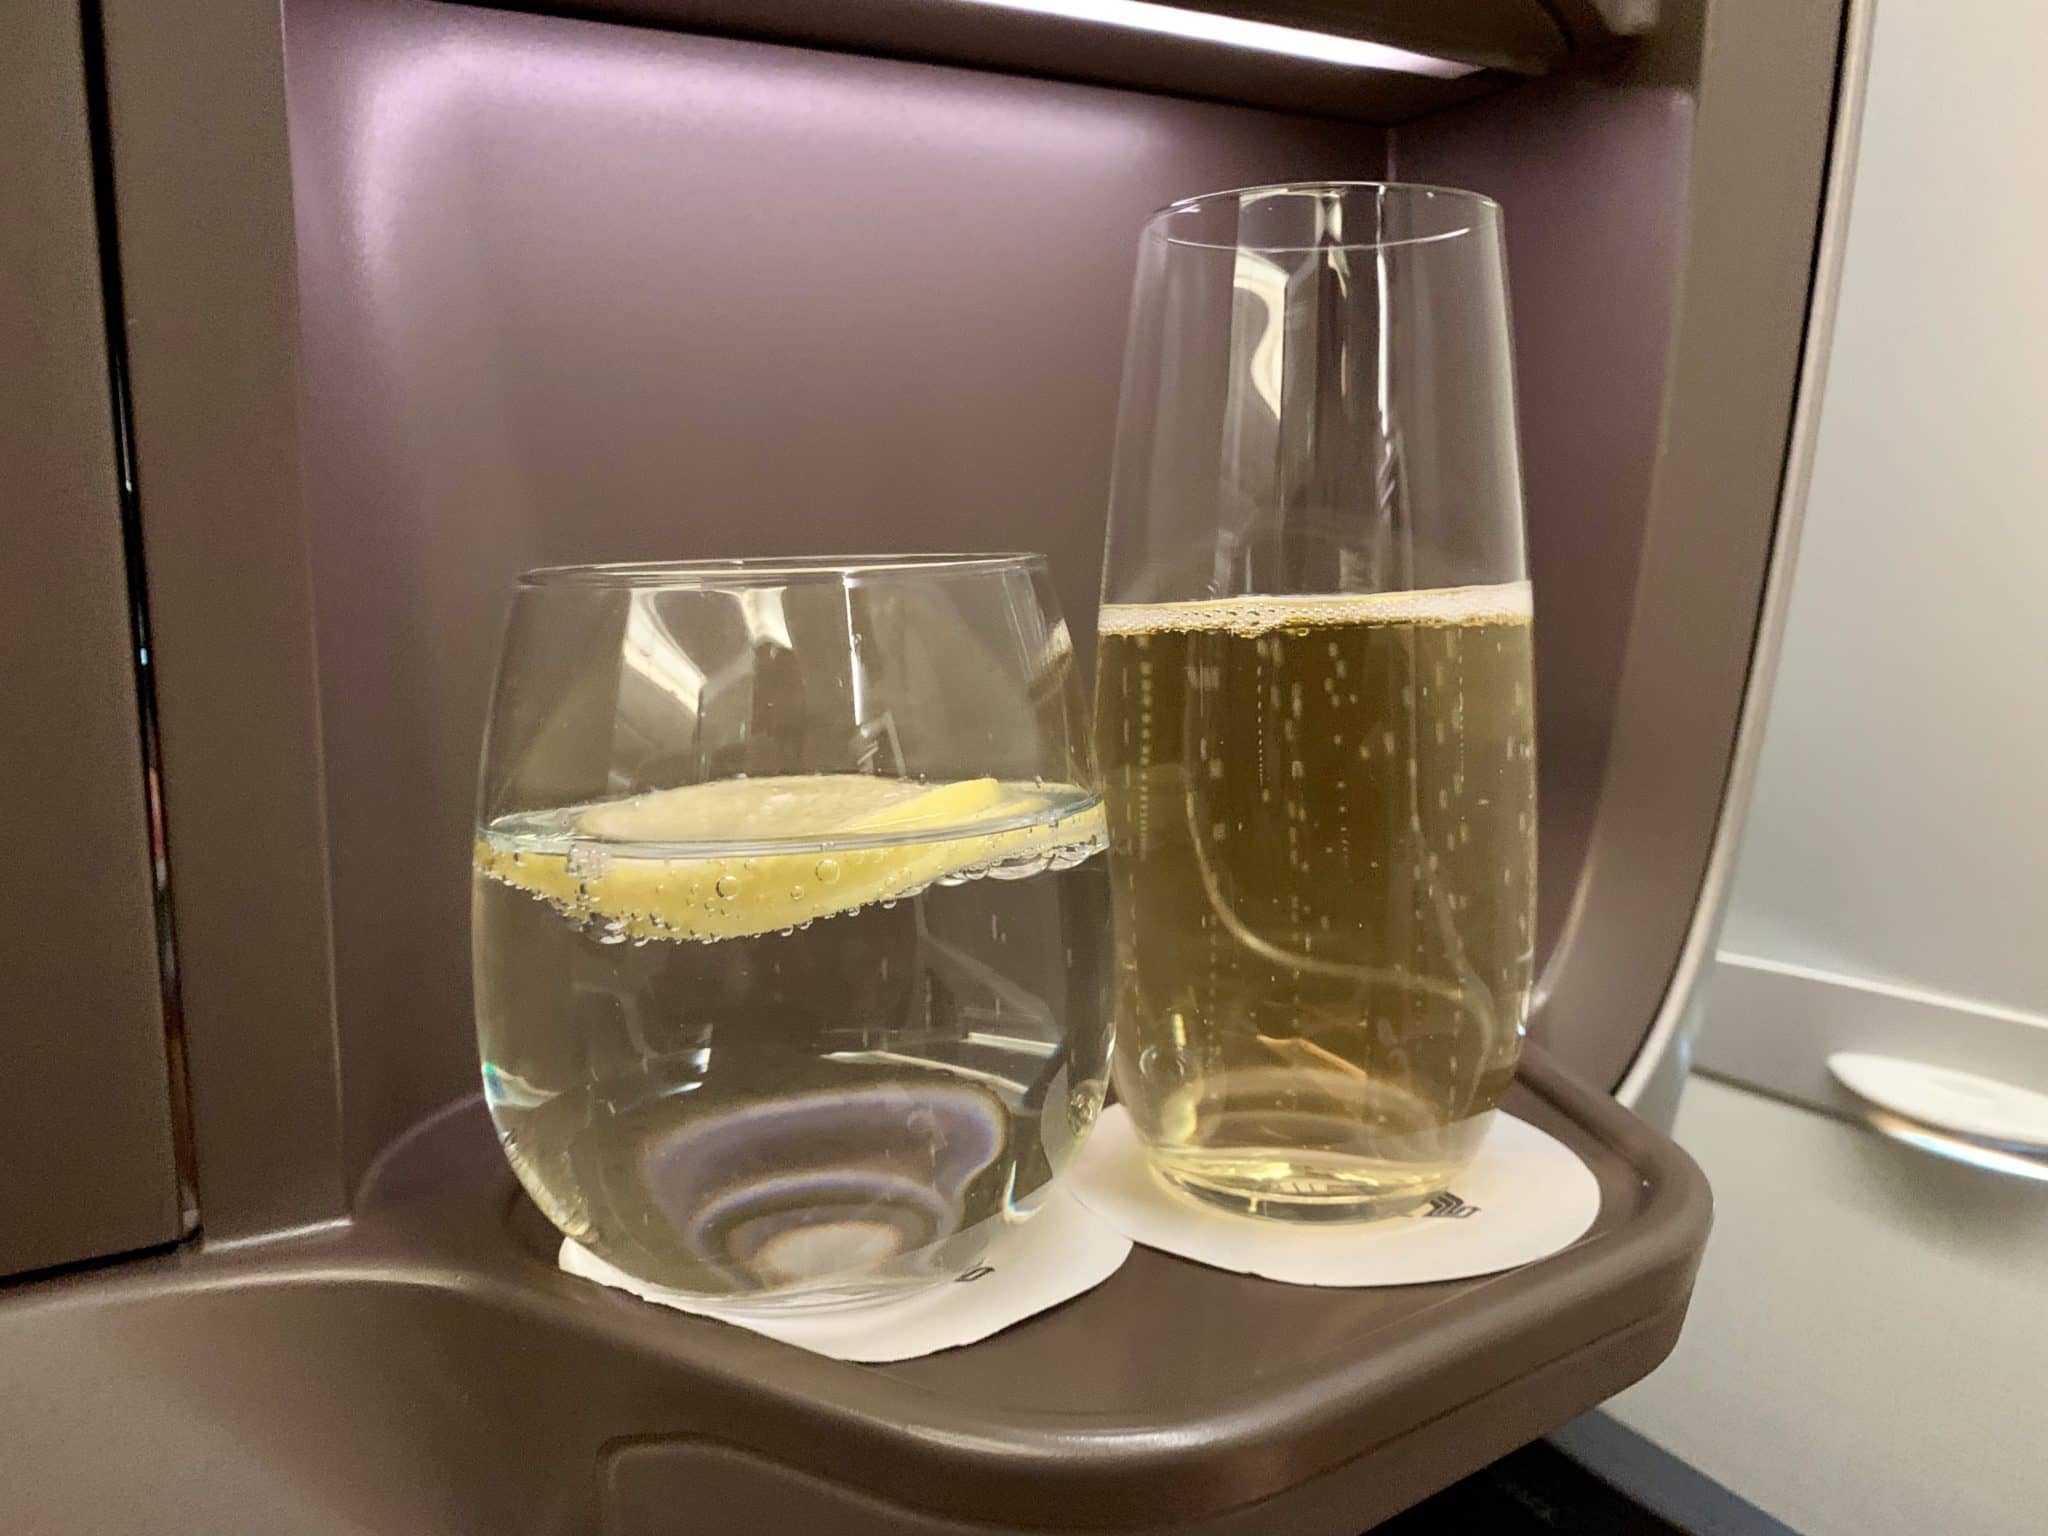 Singapore Airlines Business Class A350-900ULR Champagner